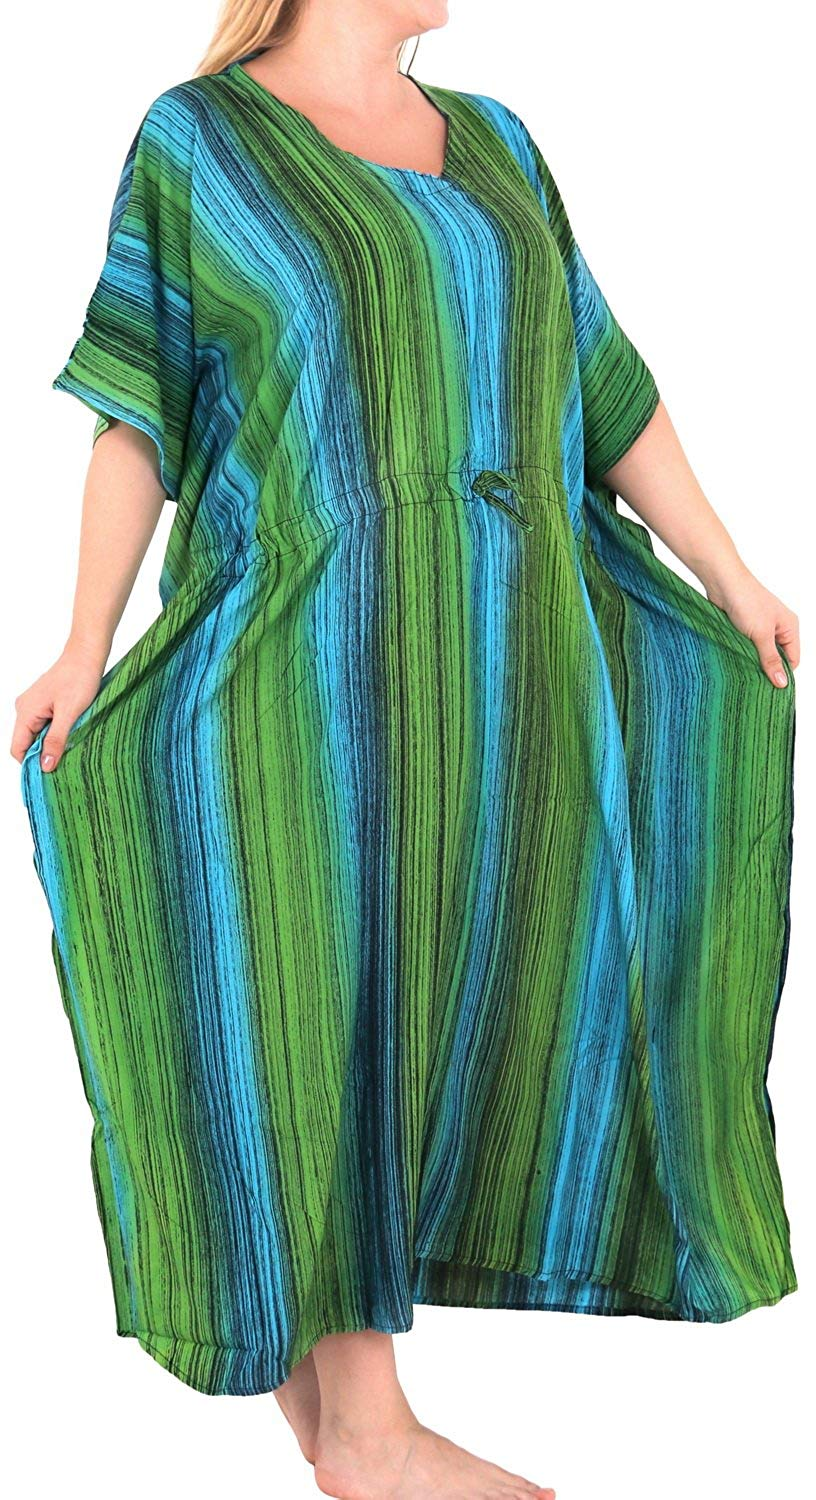 Women's Tie Dye Beachwear Sleeveless Rayon Casual Caftan Multi Cover up Green